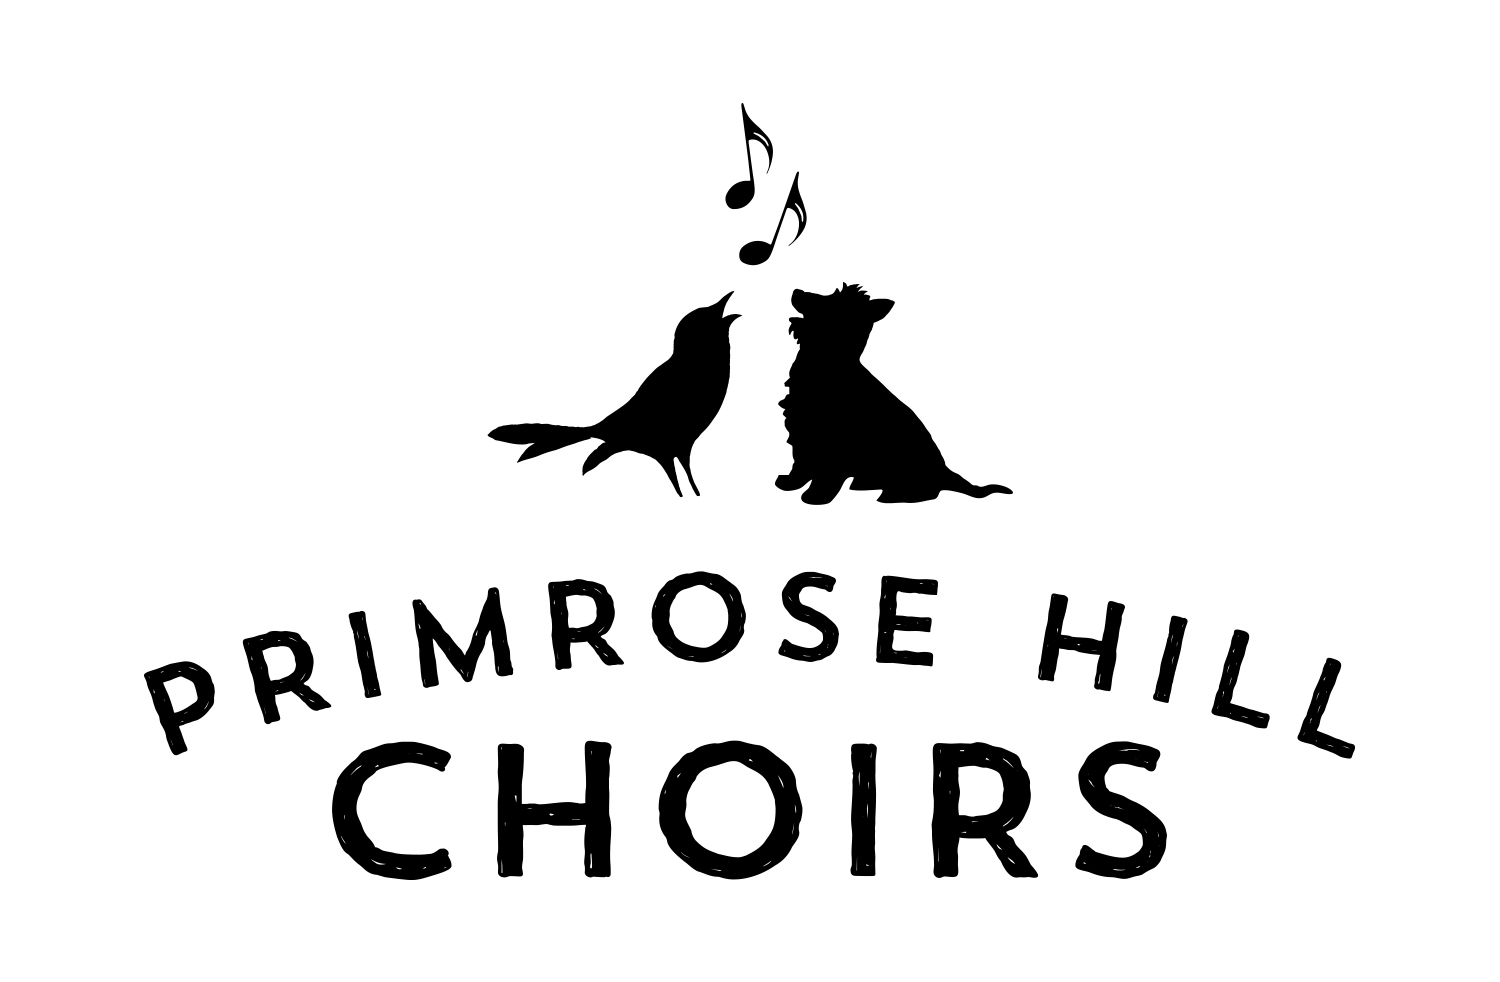 Primrose Hill Choirs - Running both a children's and Adult choir singing all styles of music.All ages and abilities are welcome.Please check out website for more informationwww.primrosehillchoirs.comor contact teacher Matthew Watts. Contact:maestromattheww@yahoo.co.uk